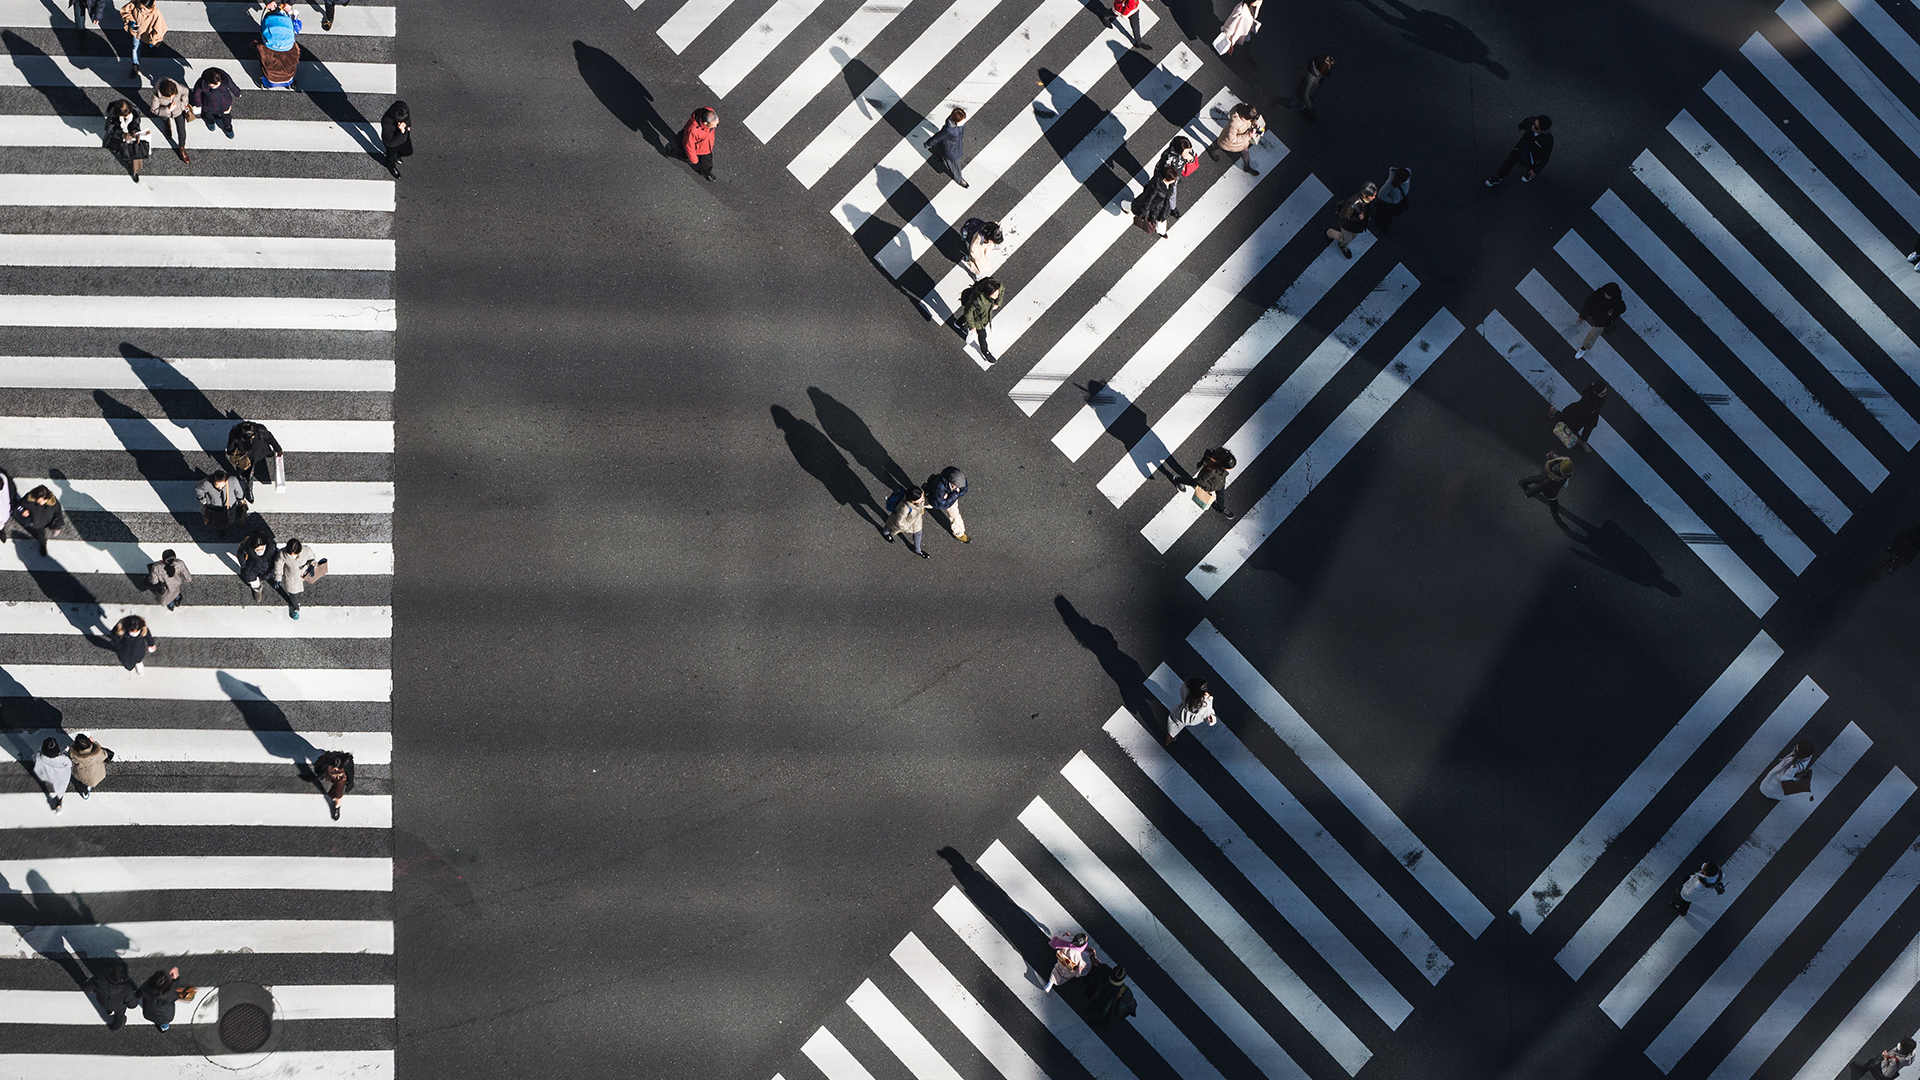 An aerial image of scattered people walking across a city intersection.